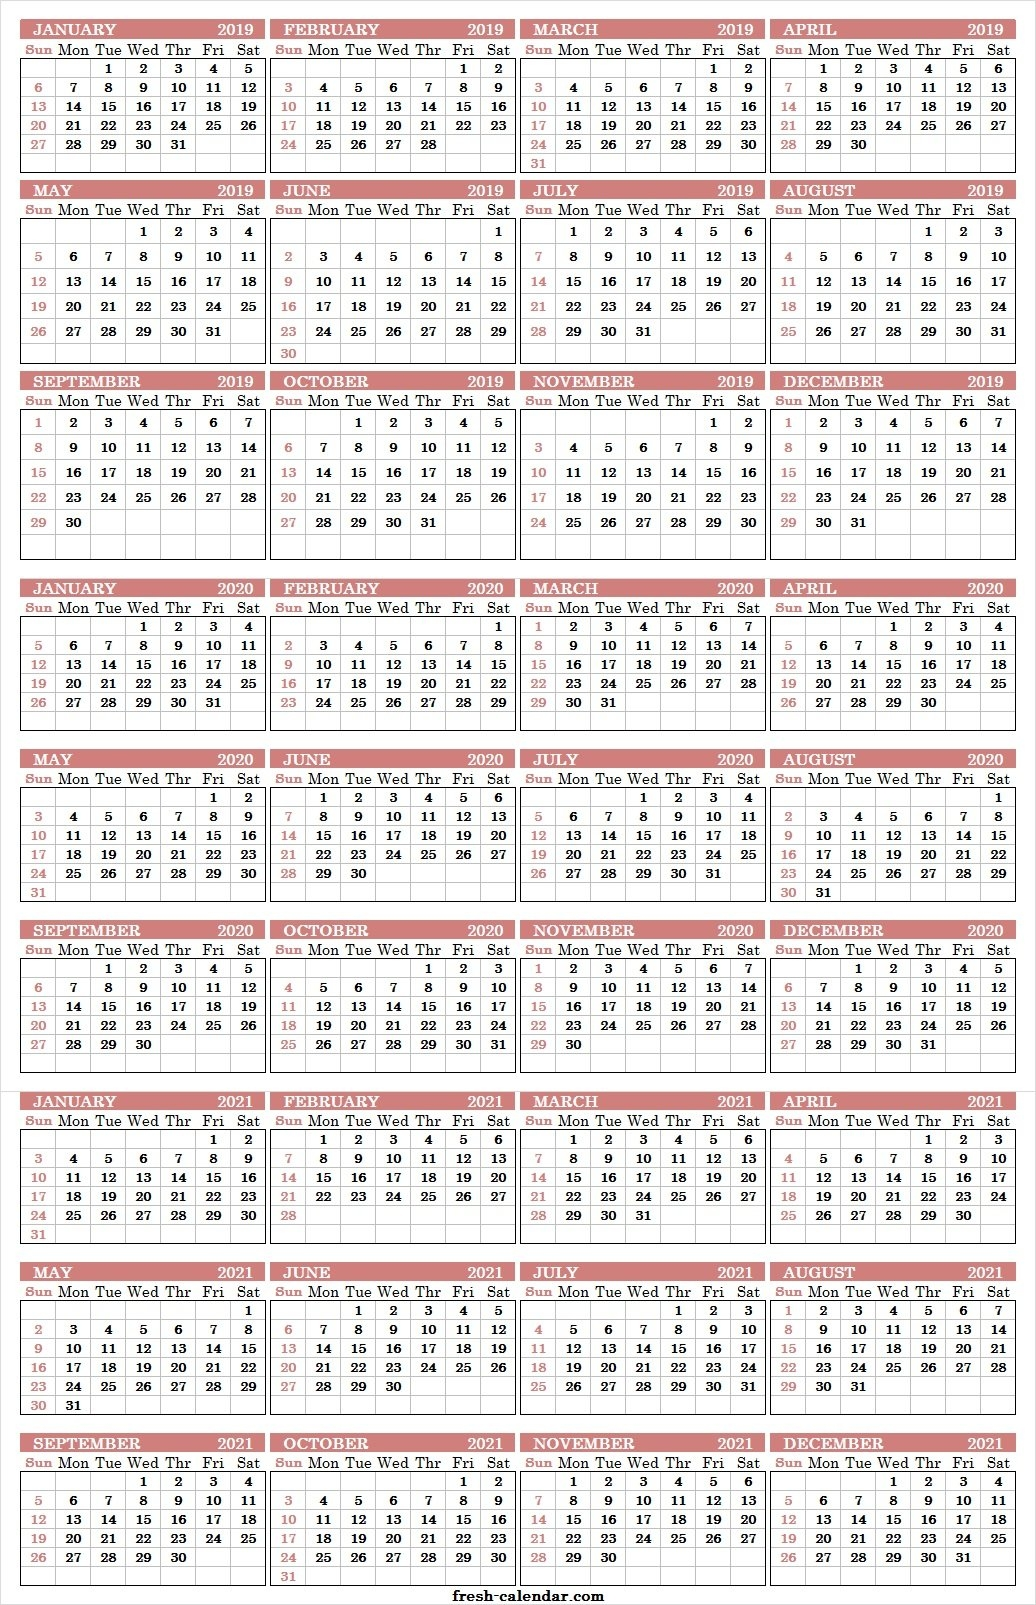 Three Yearly Calendar 2019 2020 2021 Printable Free | Blank Template 3 Year Calendar 2019 To 2021 Printable